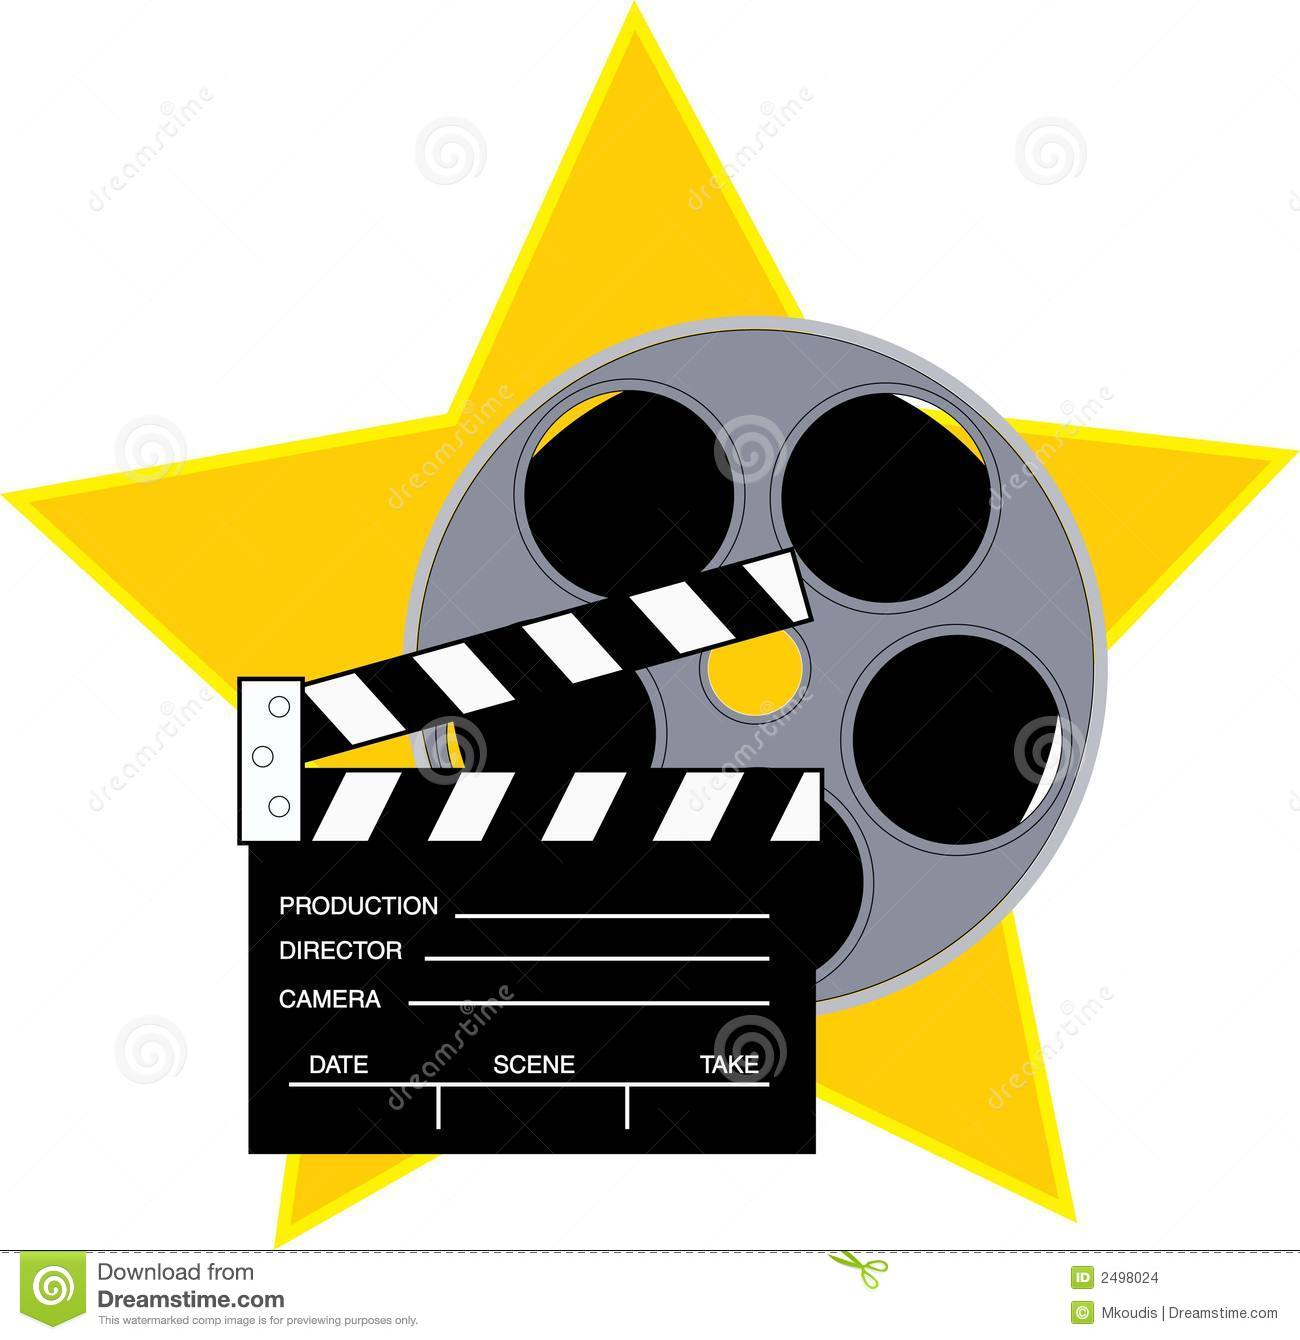 Movie reel and clapboard with a star background.